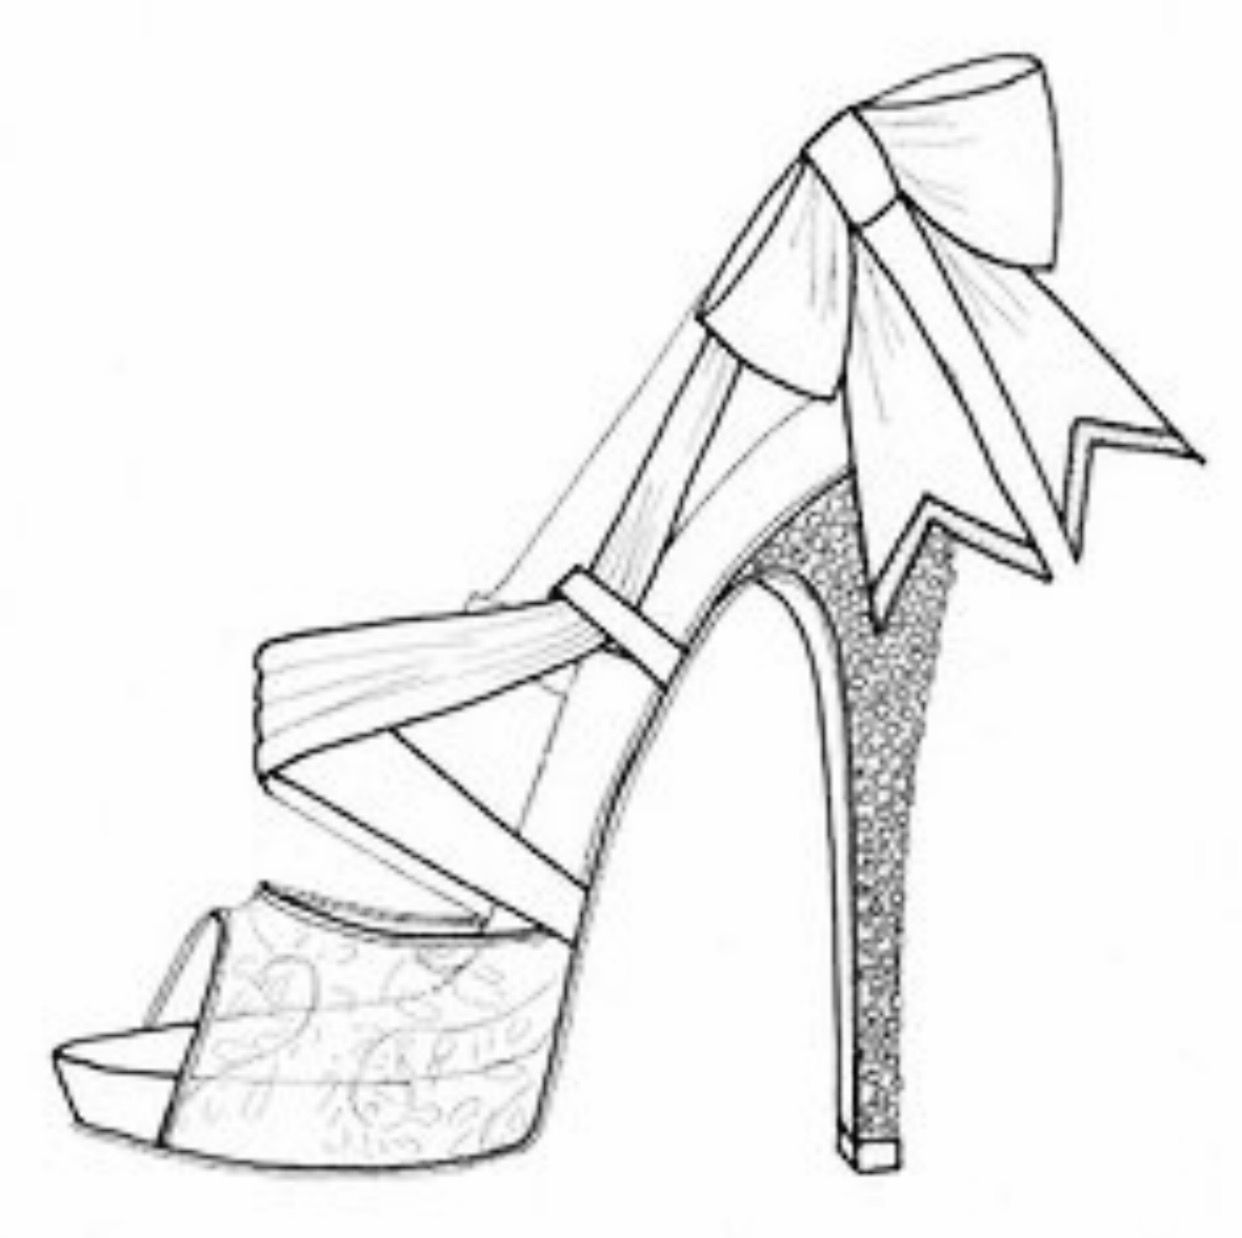 sketches of high heels sketches of high heels heels high sketches of